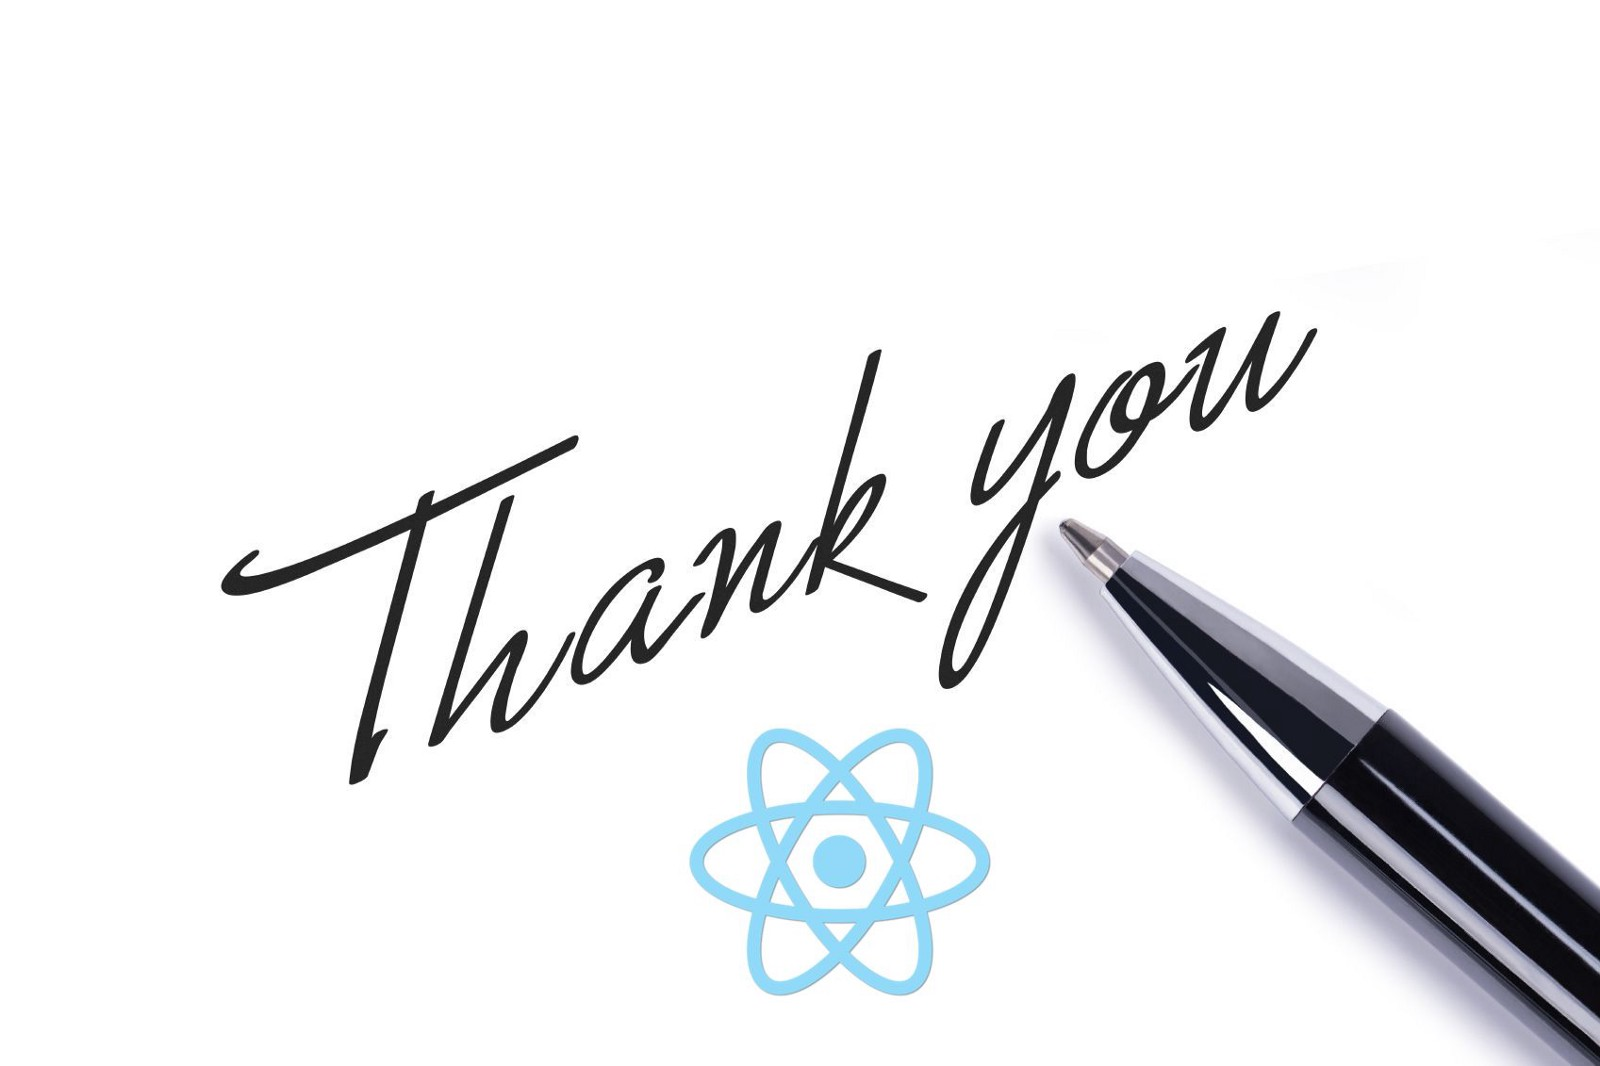 dear react a thank you letter